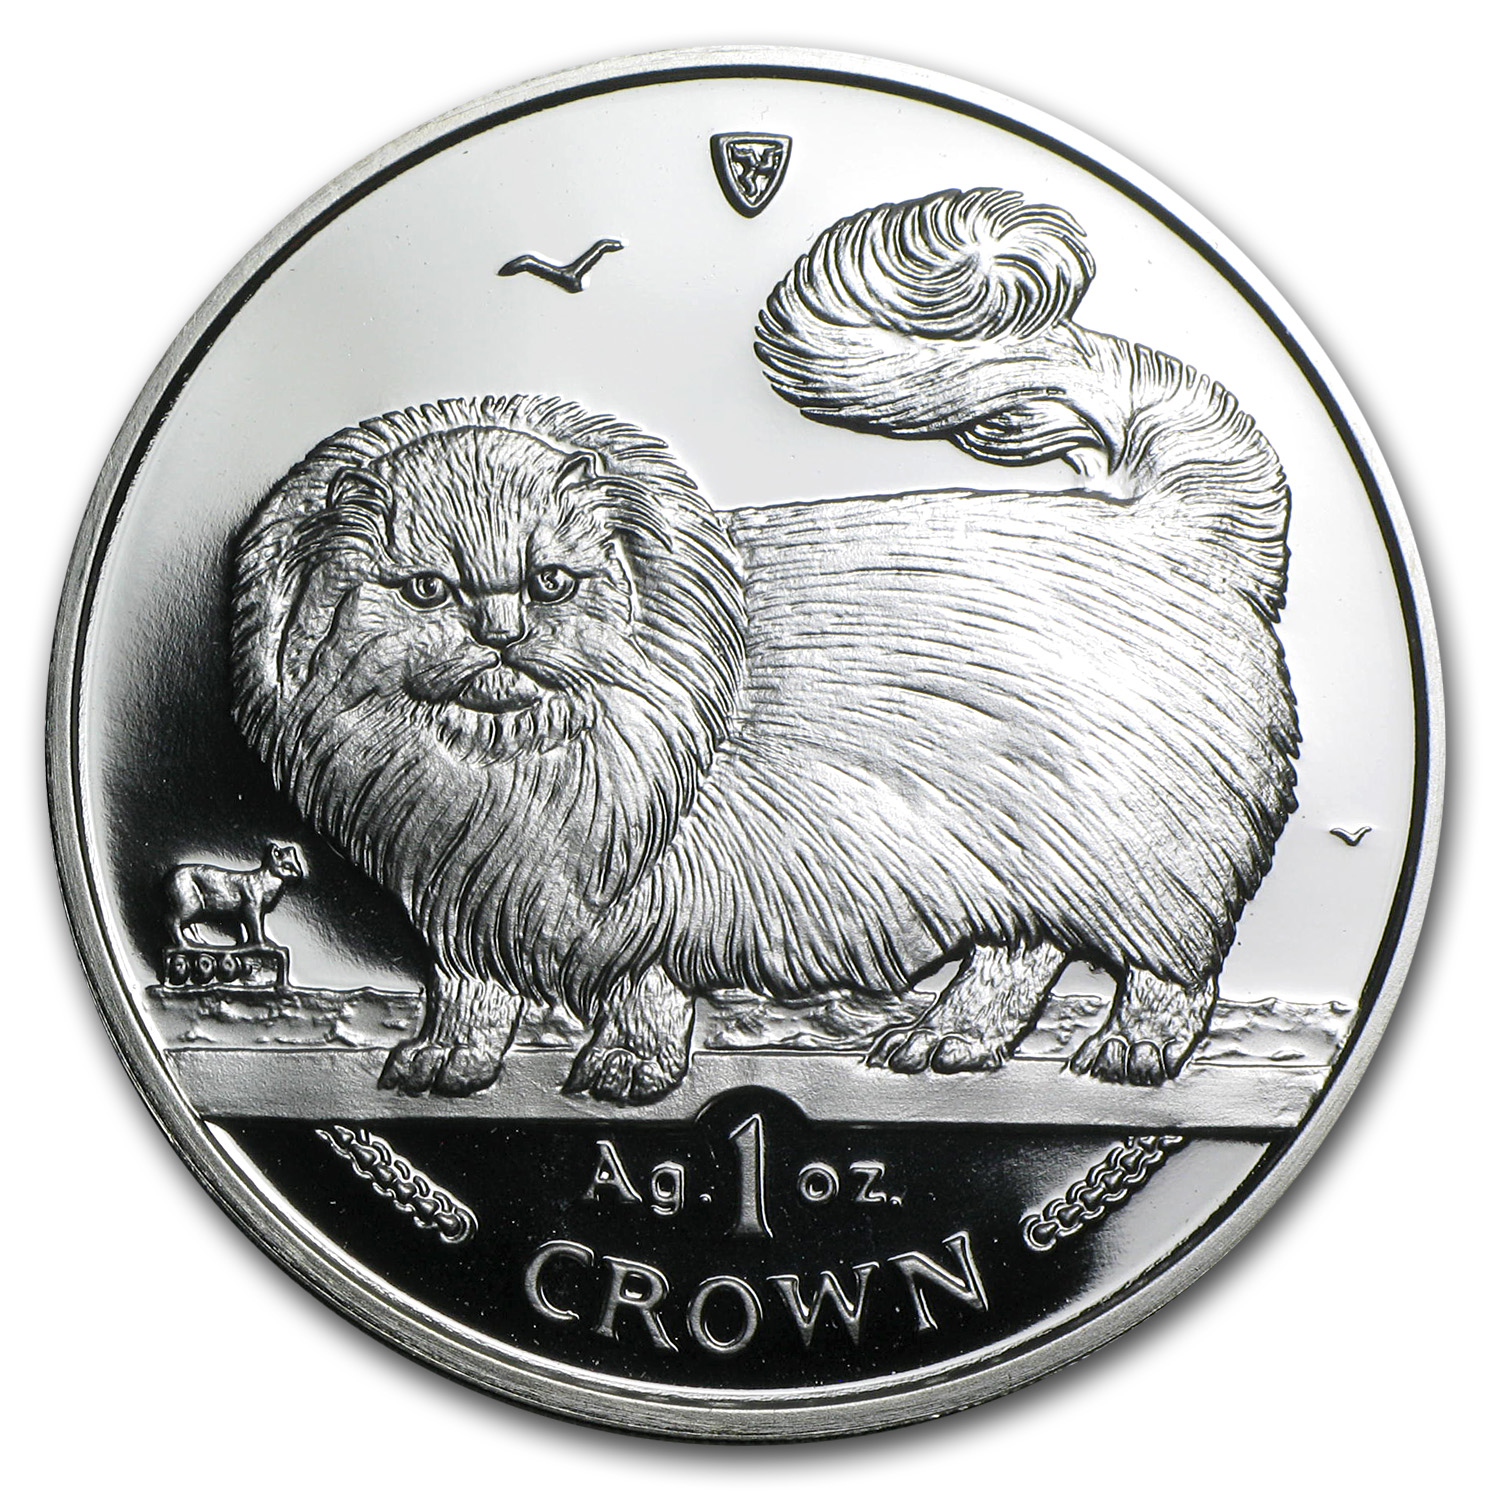 Isle of Man 1997 1 Crown Silver Proof Long Haired Smoke Cat